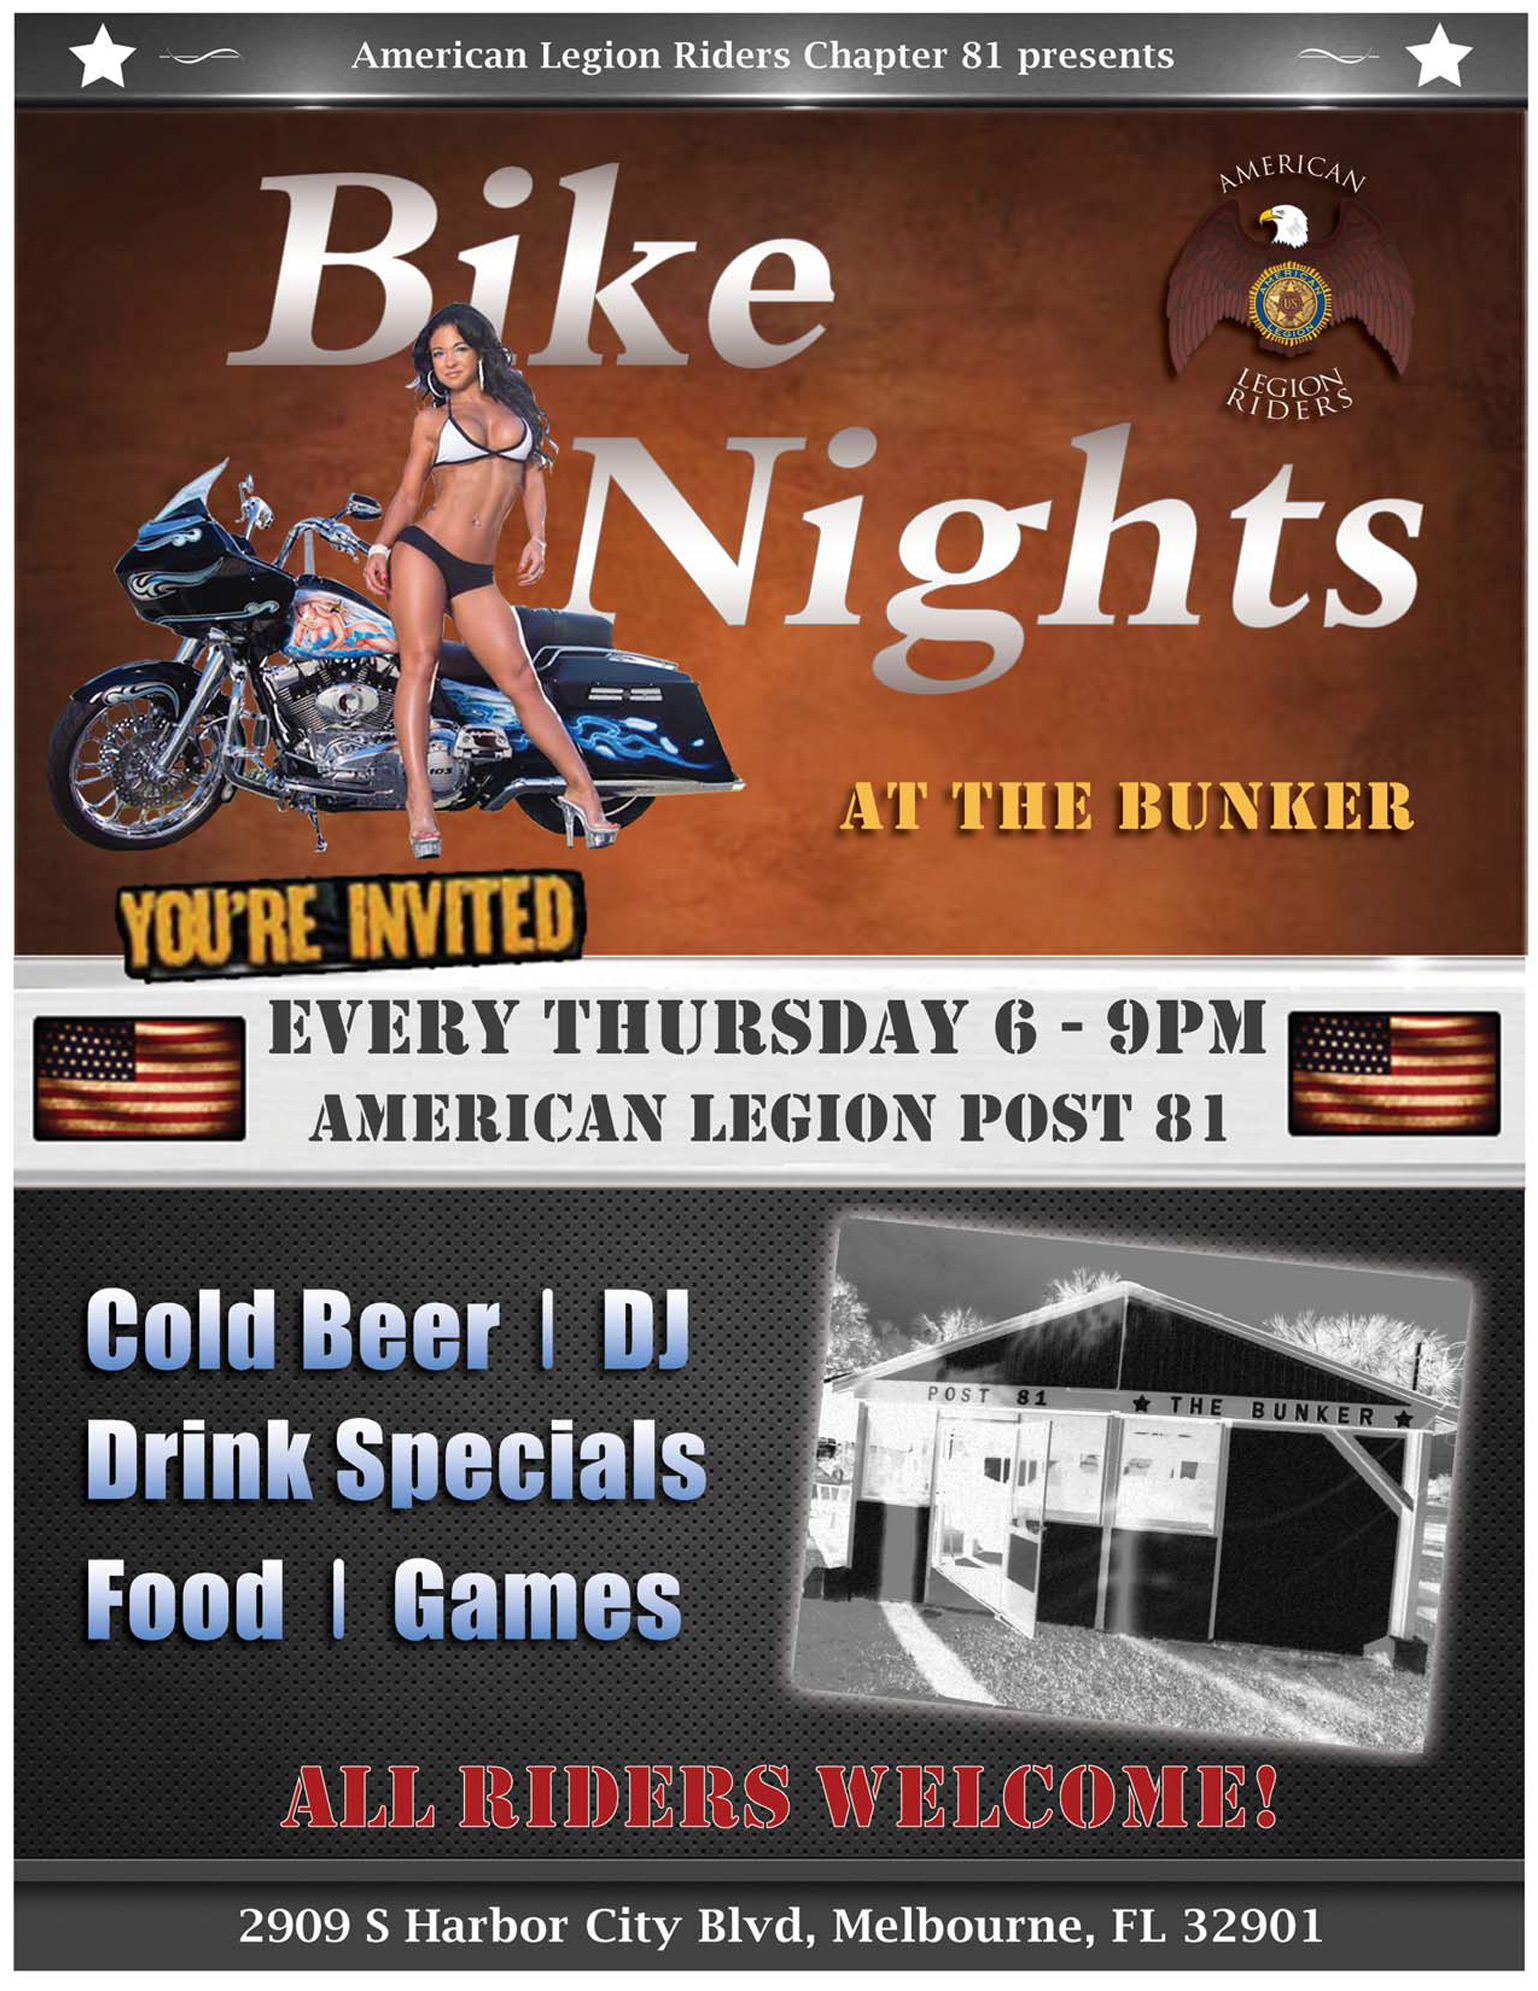 Bike Nights at the Bunker @ American Legion Post 81 | Melbourne | Florida | United States